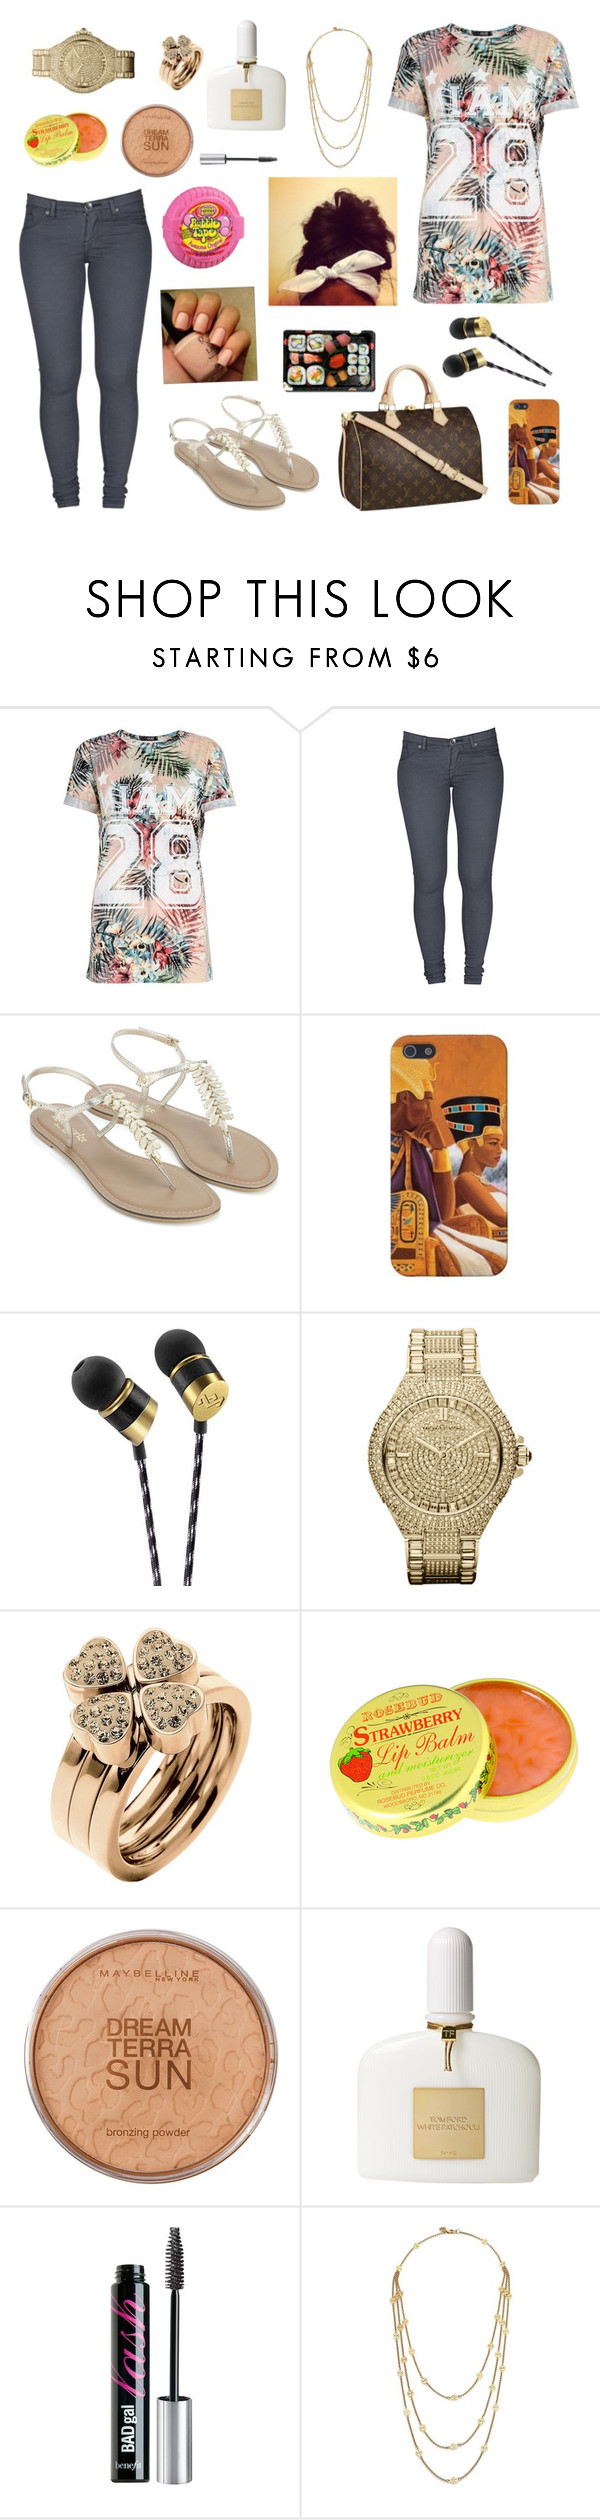 Pin su My Polyvore Finds